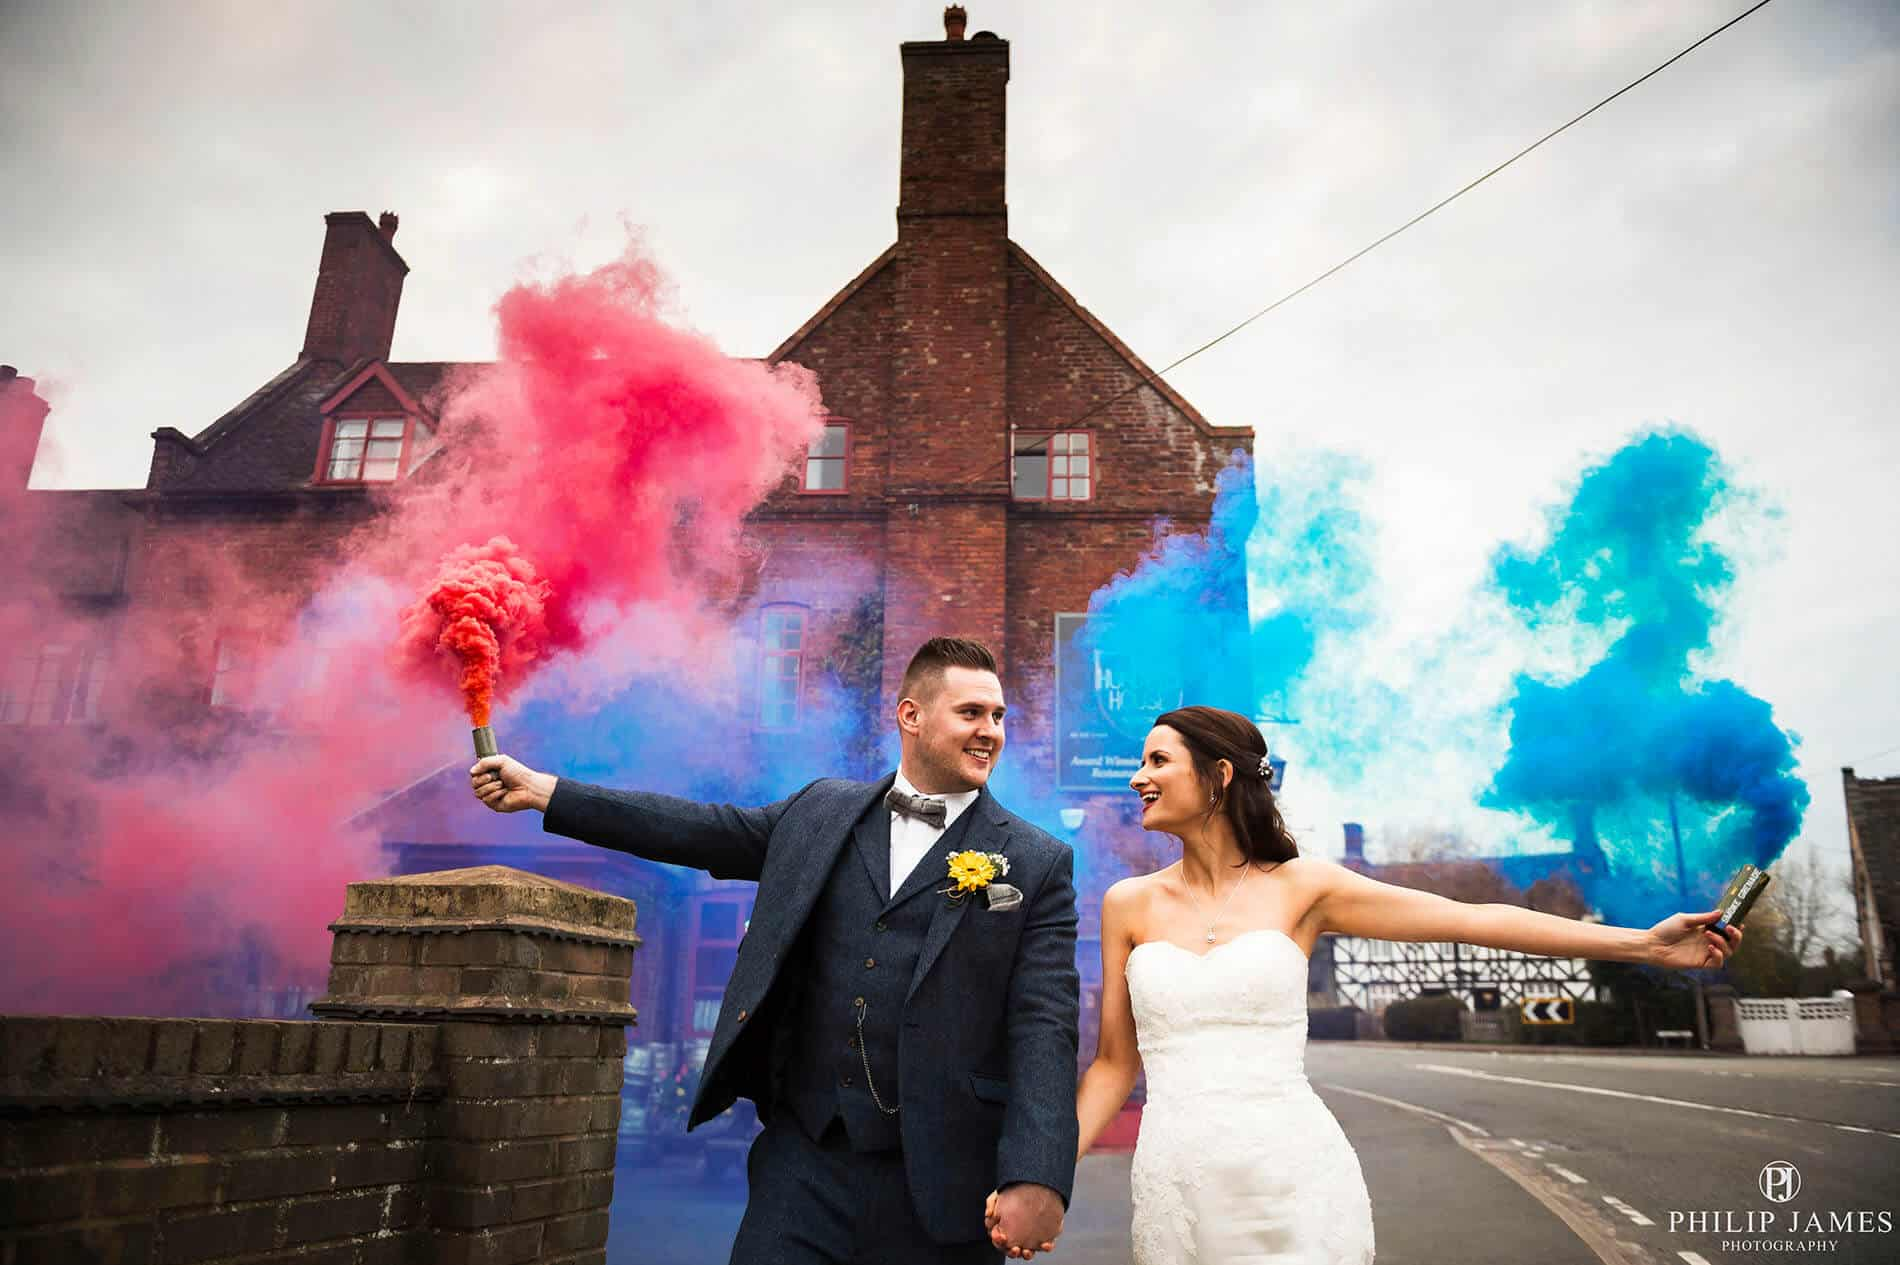 Hundred House Wedding Photographer - Philip James covers Birmingham, The West Midlands, Solihull and Destination weddings. Wedding photography Birmingham is my passion